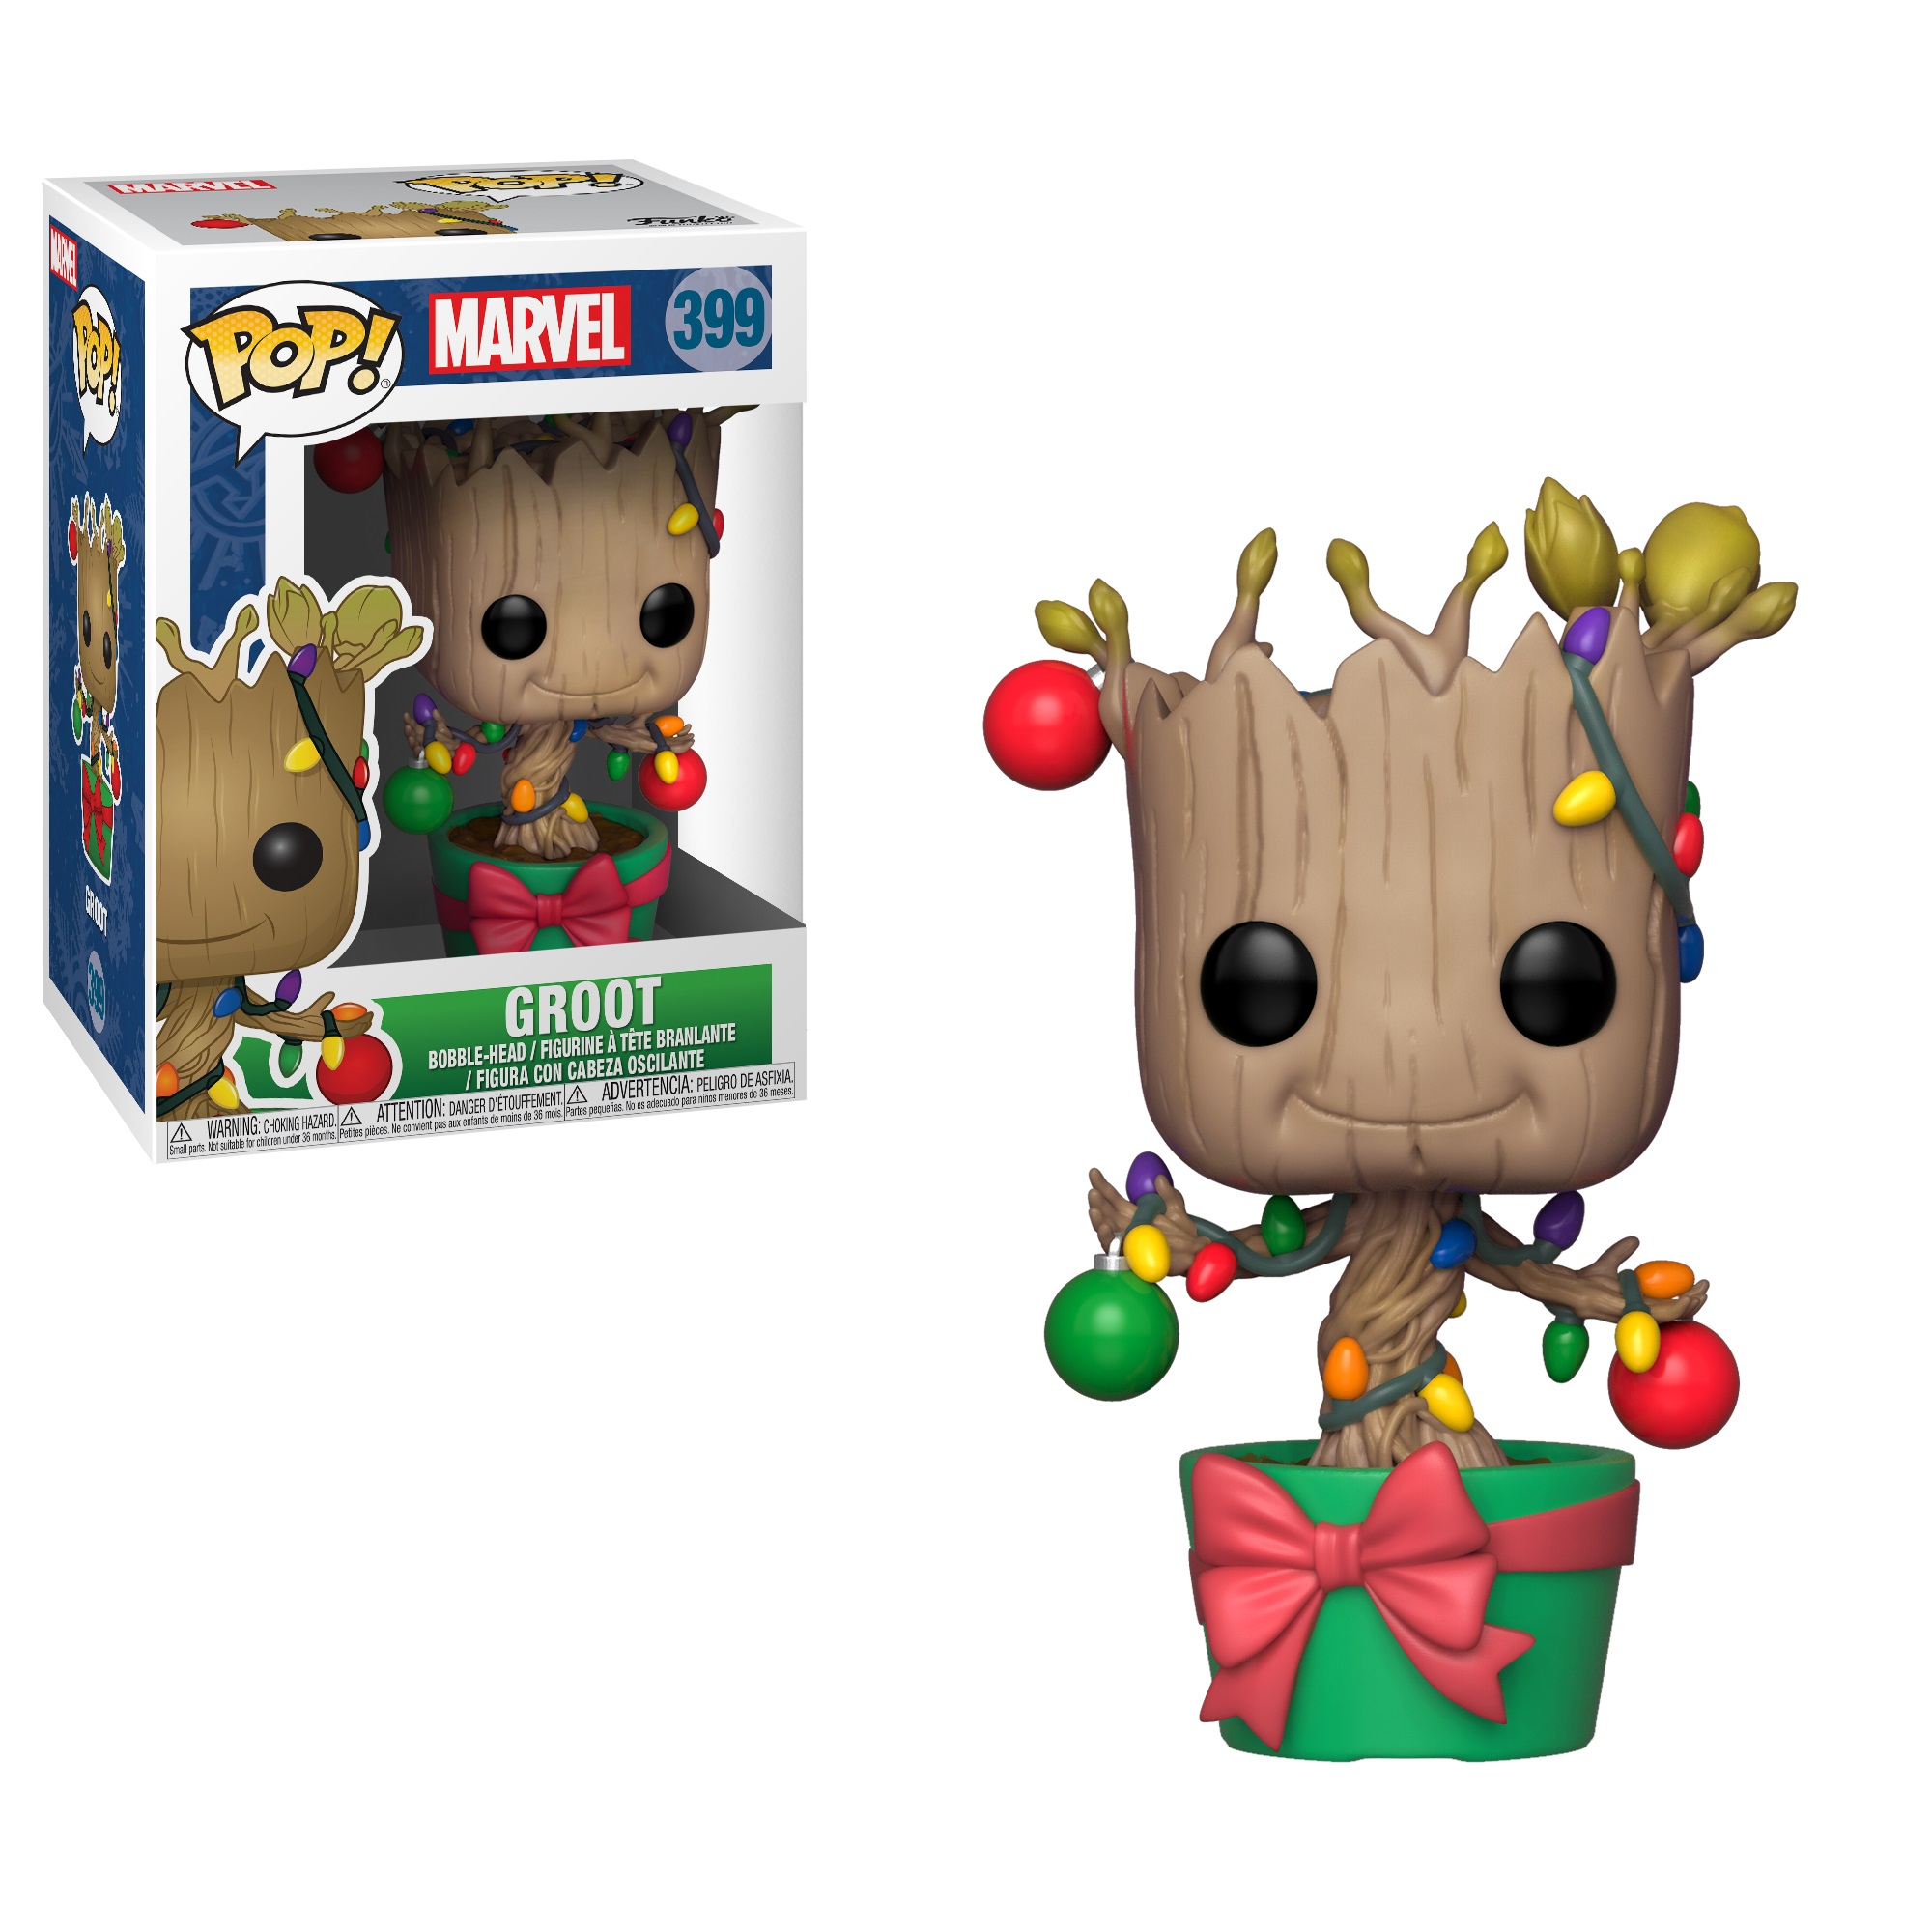 Marvel Holiday Funko Pop Now Available To Pre Order